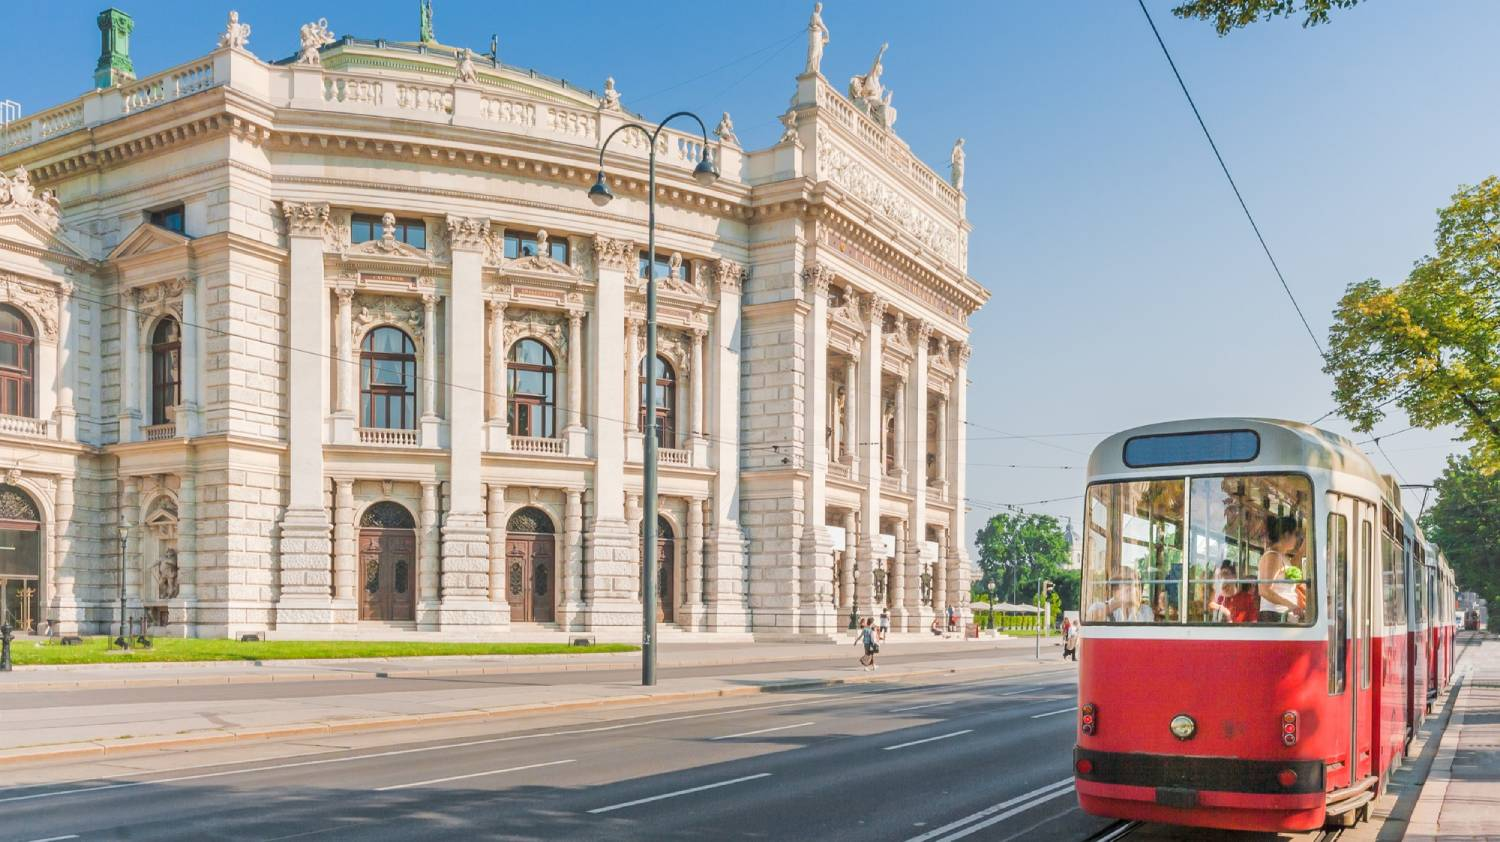 Historic Center of Vienna (1st District) - Things To Do In Vienna